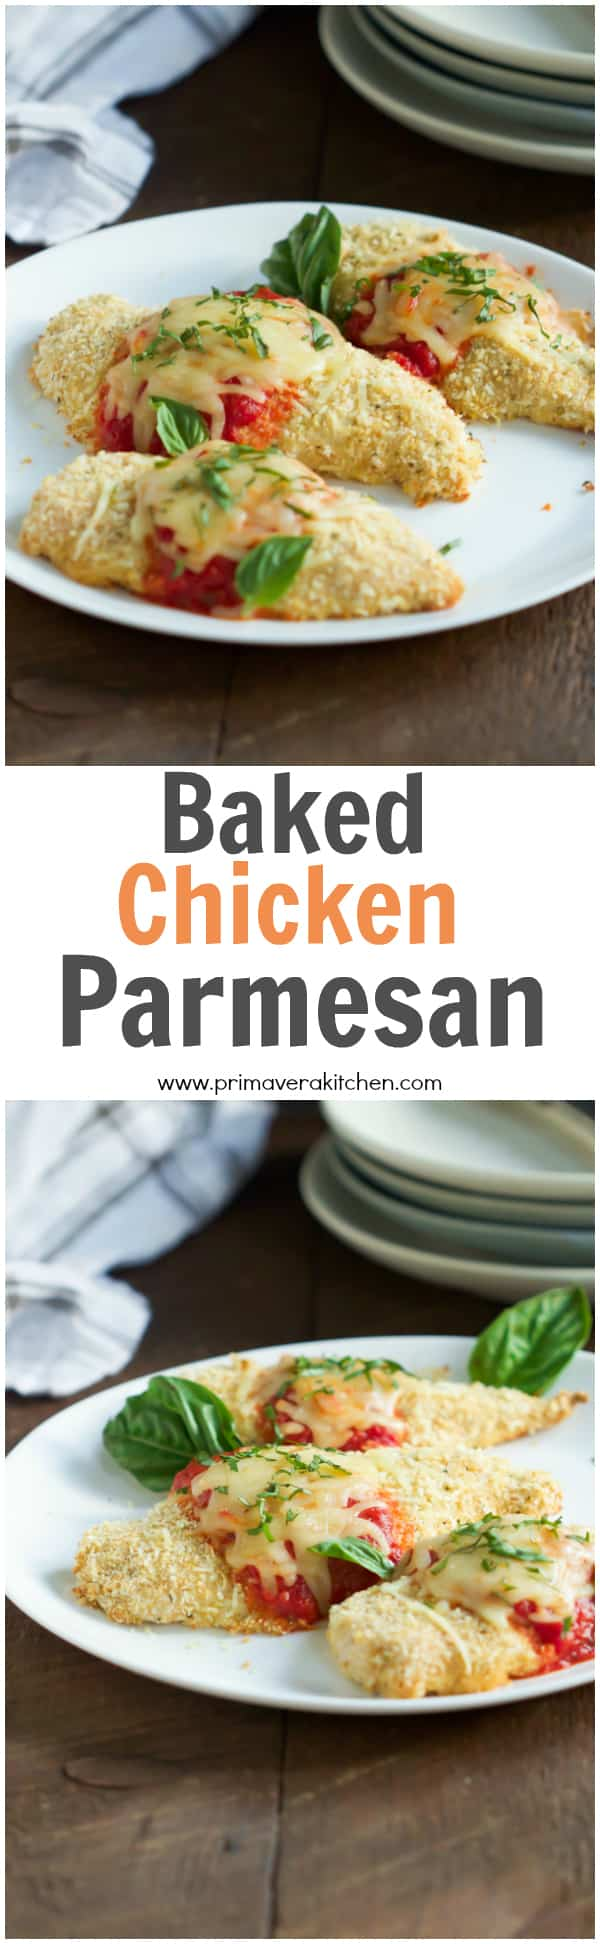 Baked Chicken Parmesan This Baked Chicken Parmesan Is Light Version Of The Traditional Italian Recipes